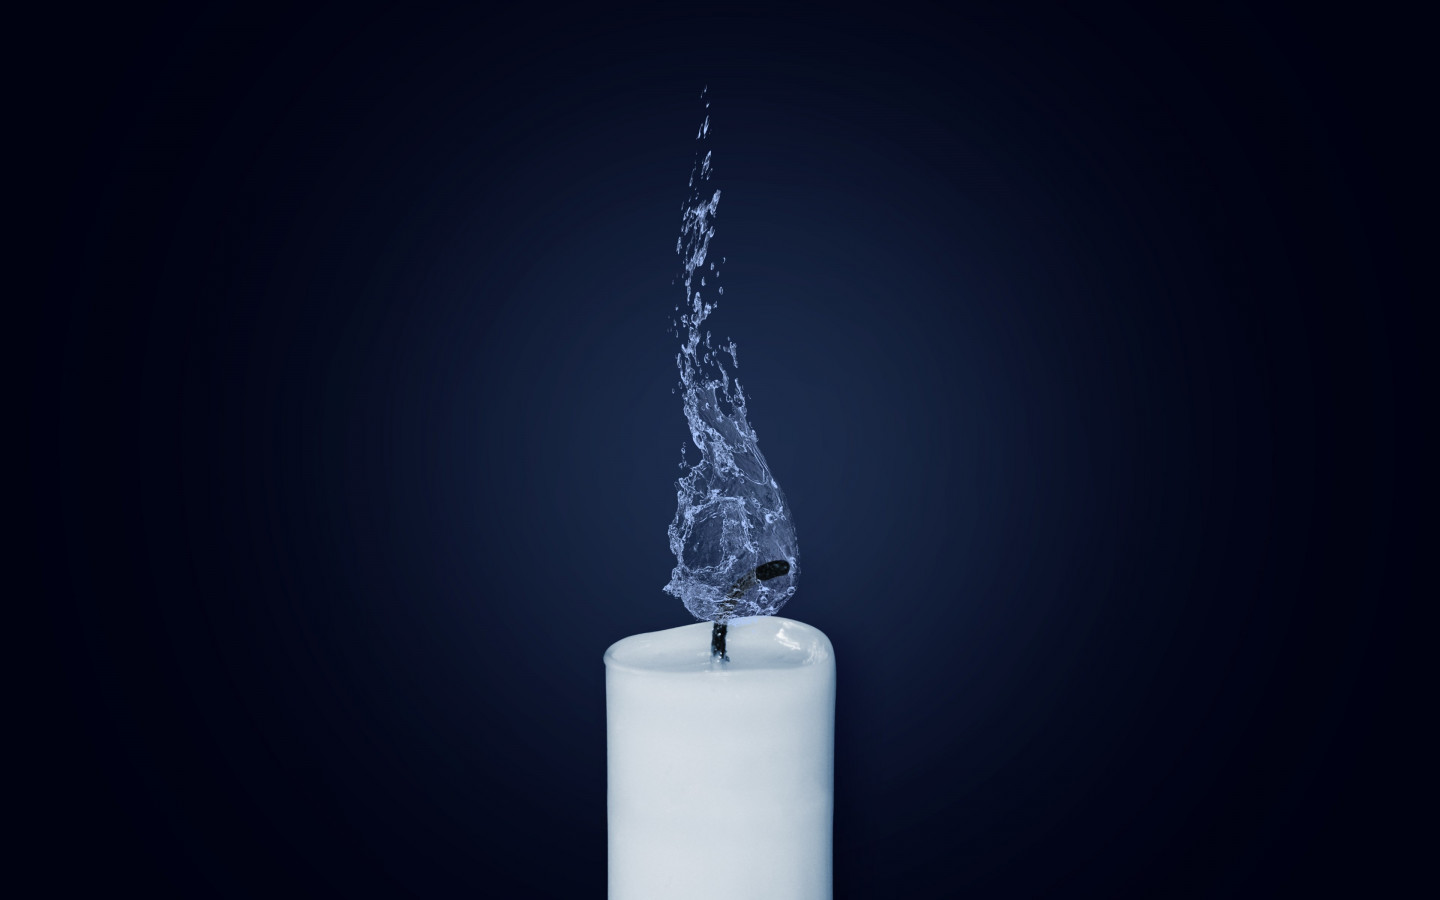 Water Flame. Candlelight | 1440x900 wallpaper